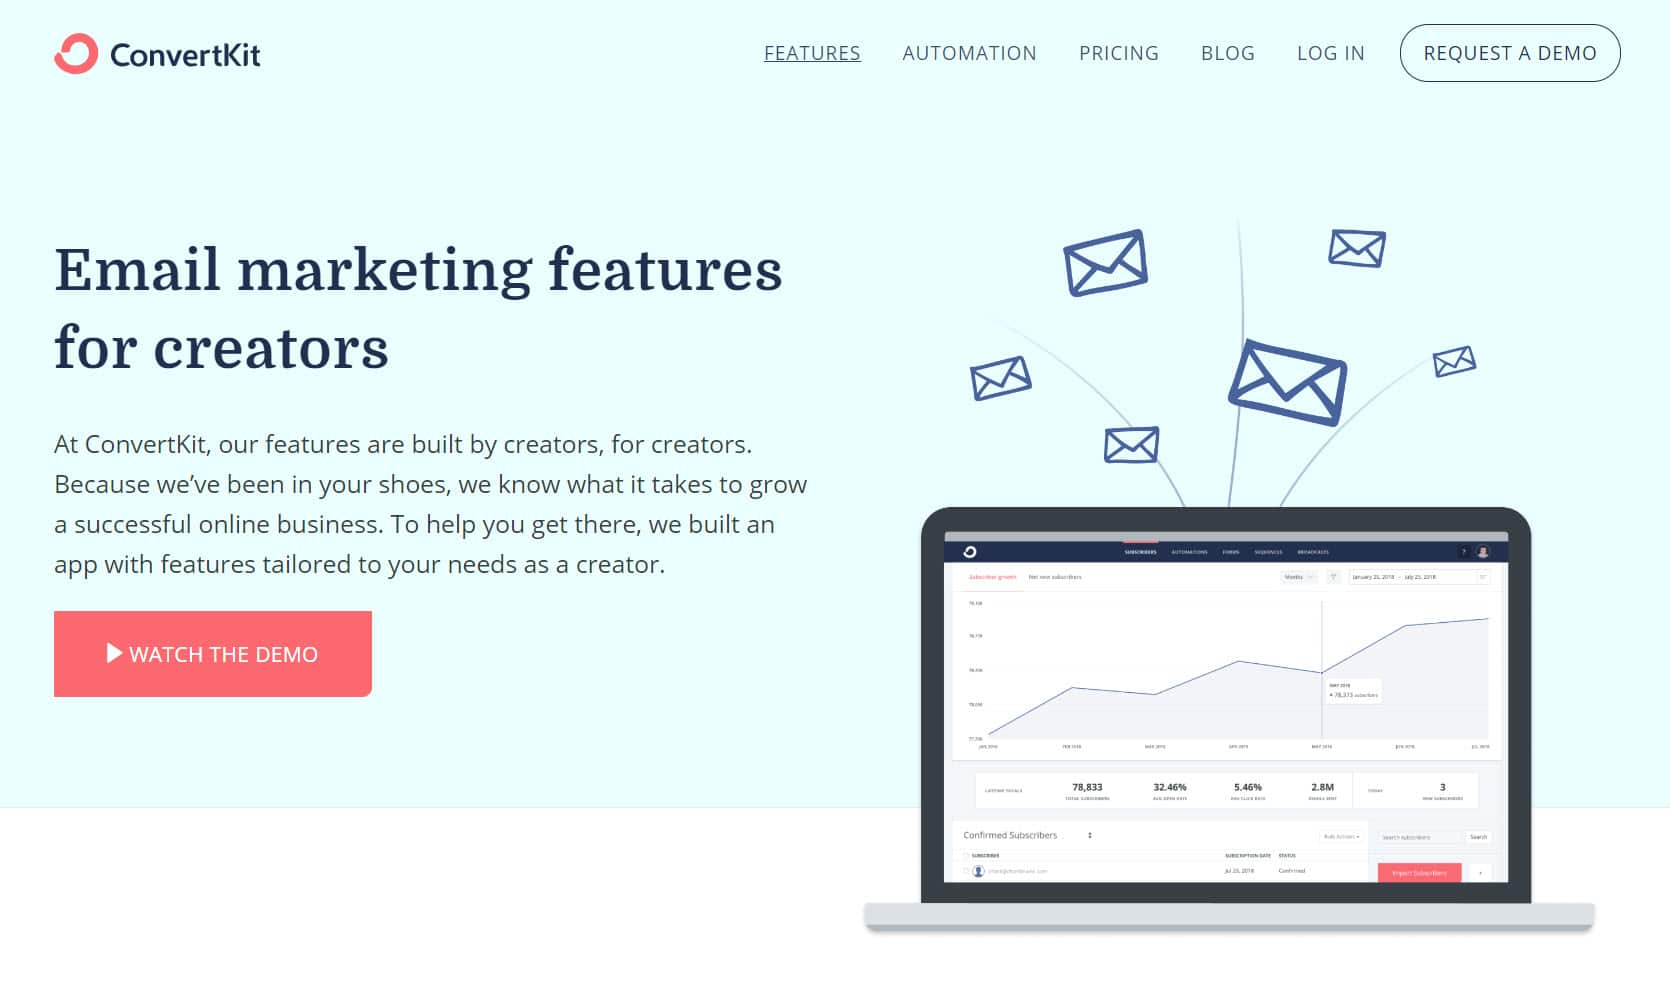 Buy Convertkit Email Marketing Us Online Promotional Code